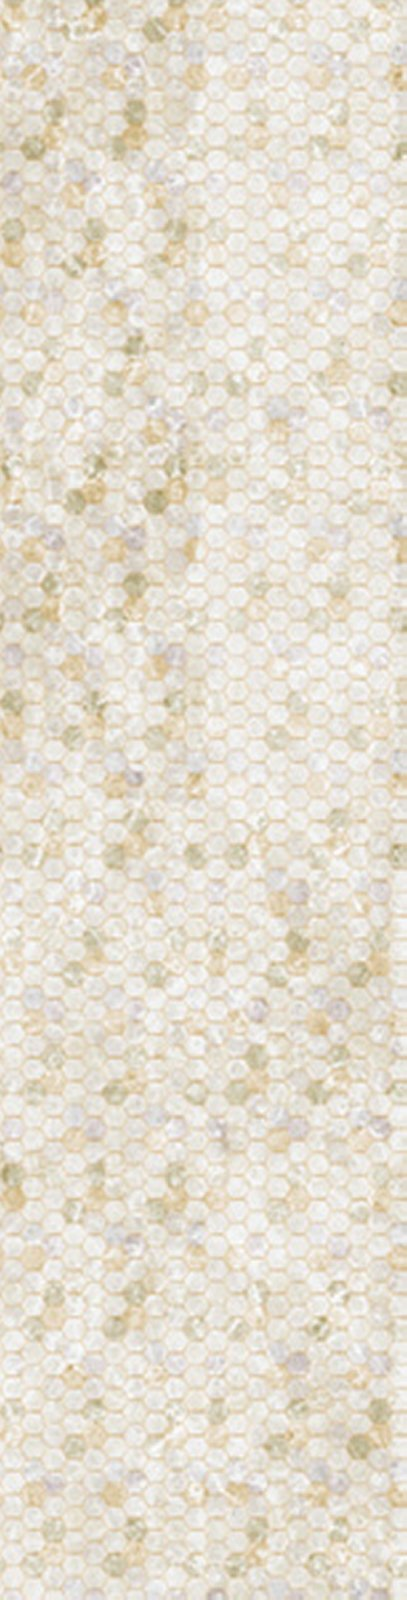 S4762-20 Natural Digital Print Backsplash 2.0 Hoffman Fabrics